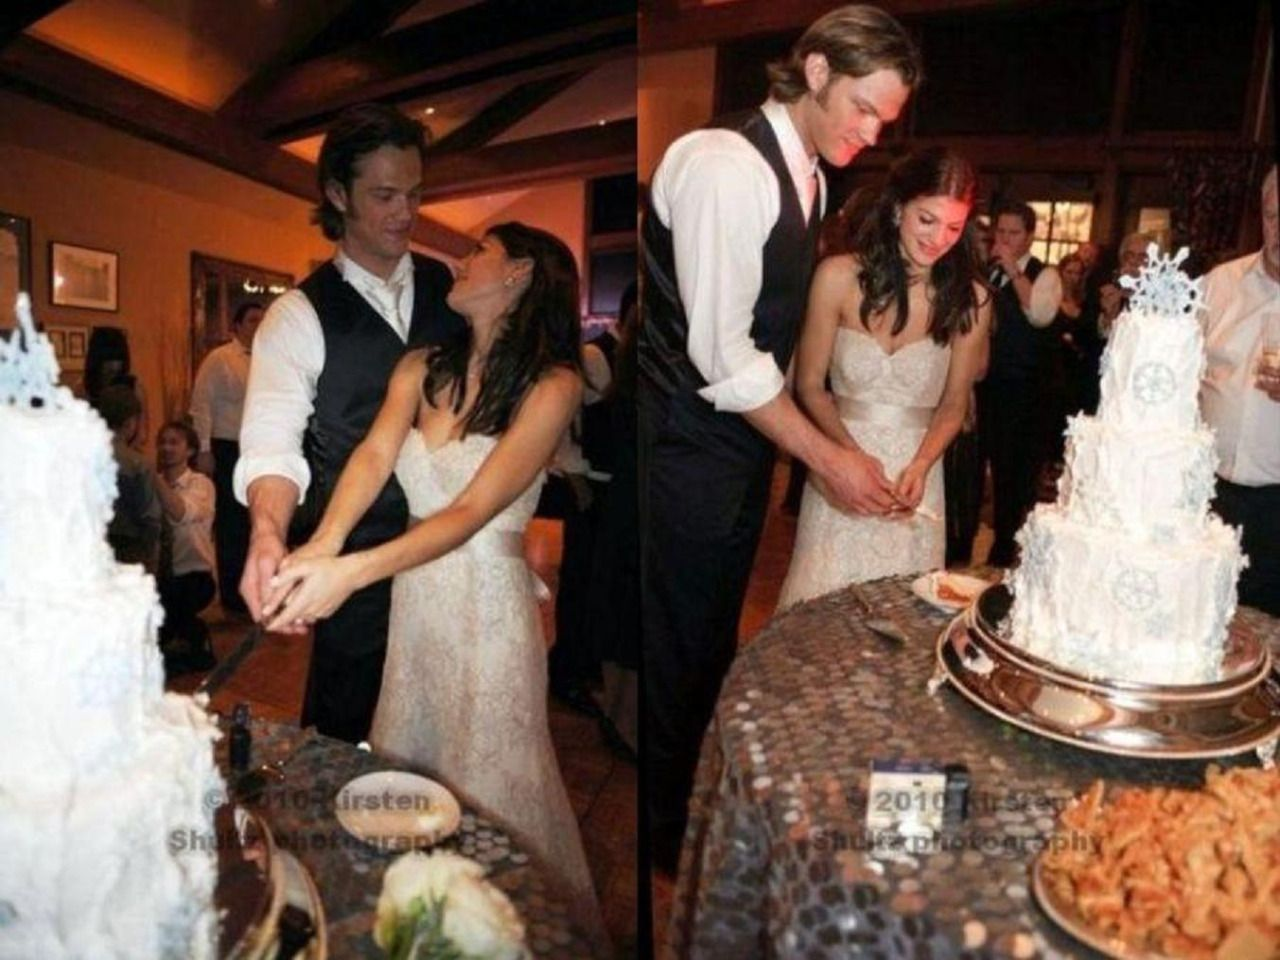 Jared Padalecki And Genevieve Cortese Wedding Our Party Consists Of Friends Family That